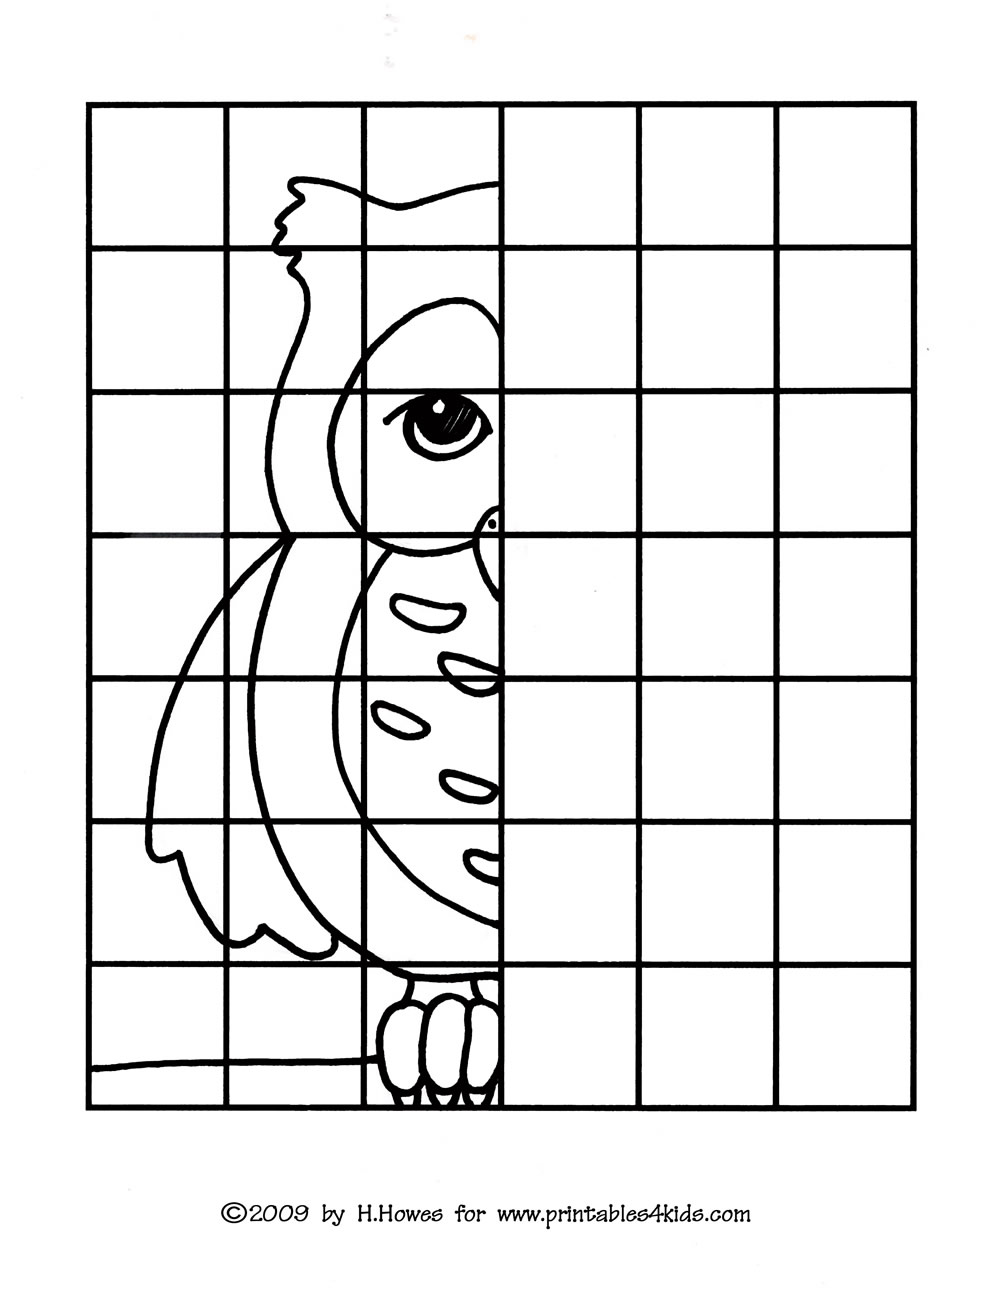 owl complete the picture drawing printables for kids free word search puzzles coloring. Black Bedroom Furniture Sets. Home Design Ideas